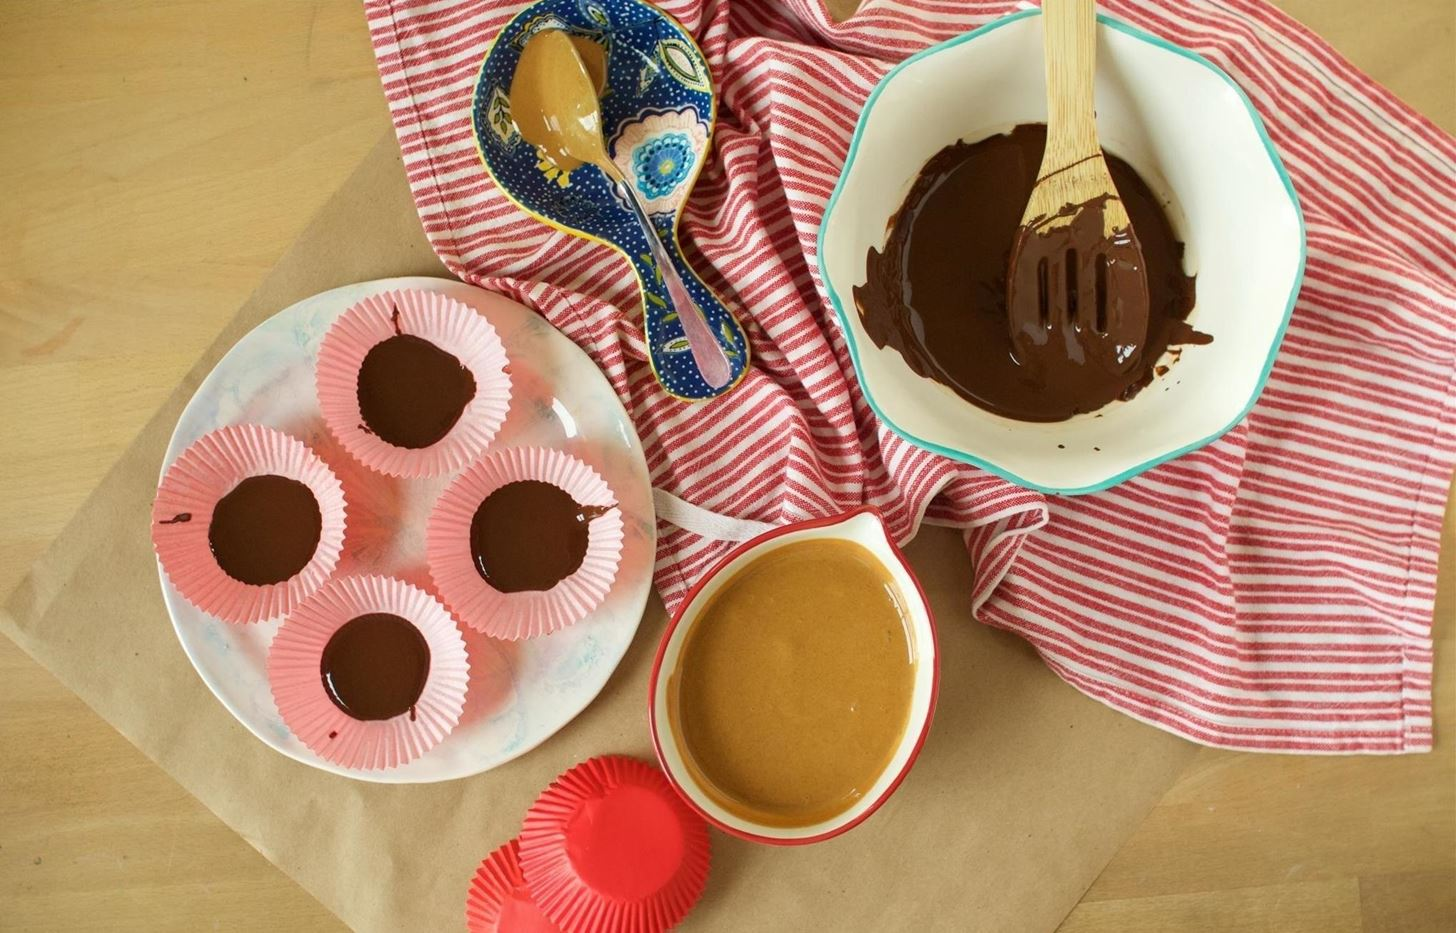 Making Reese's Peanut Butter Cups at Home Is Super Simple